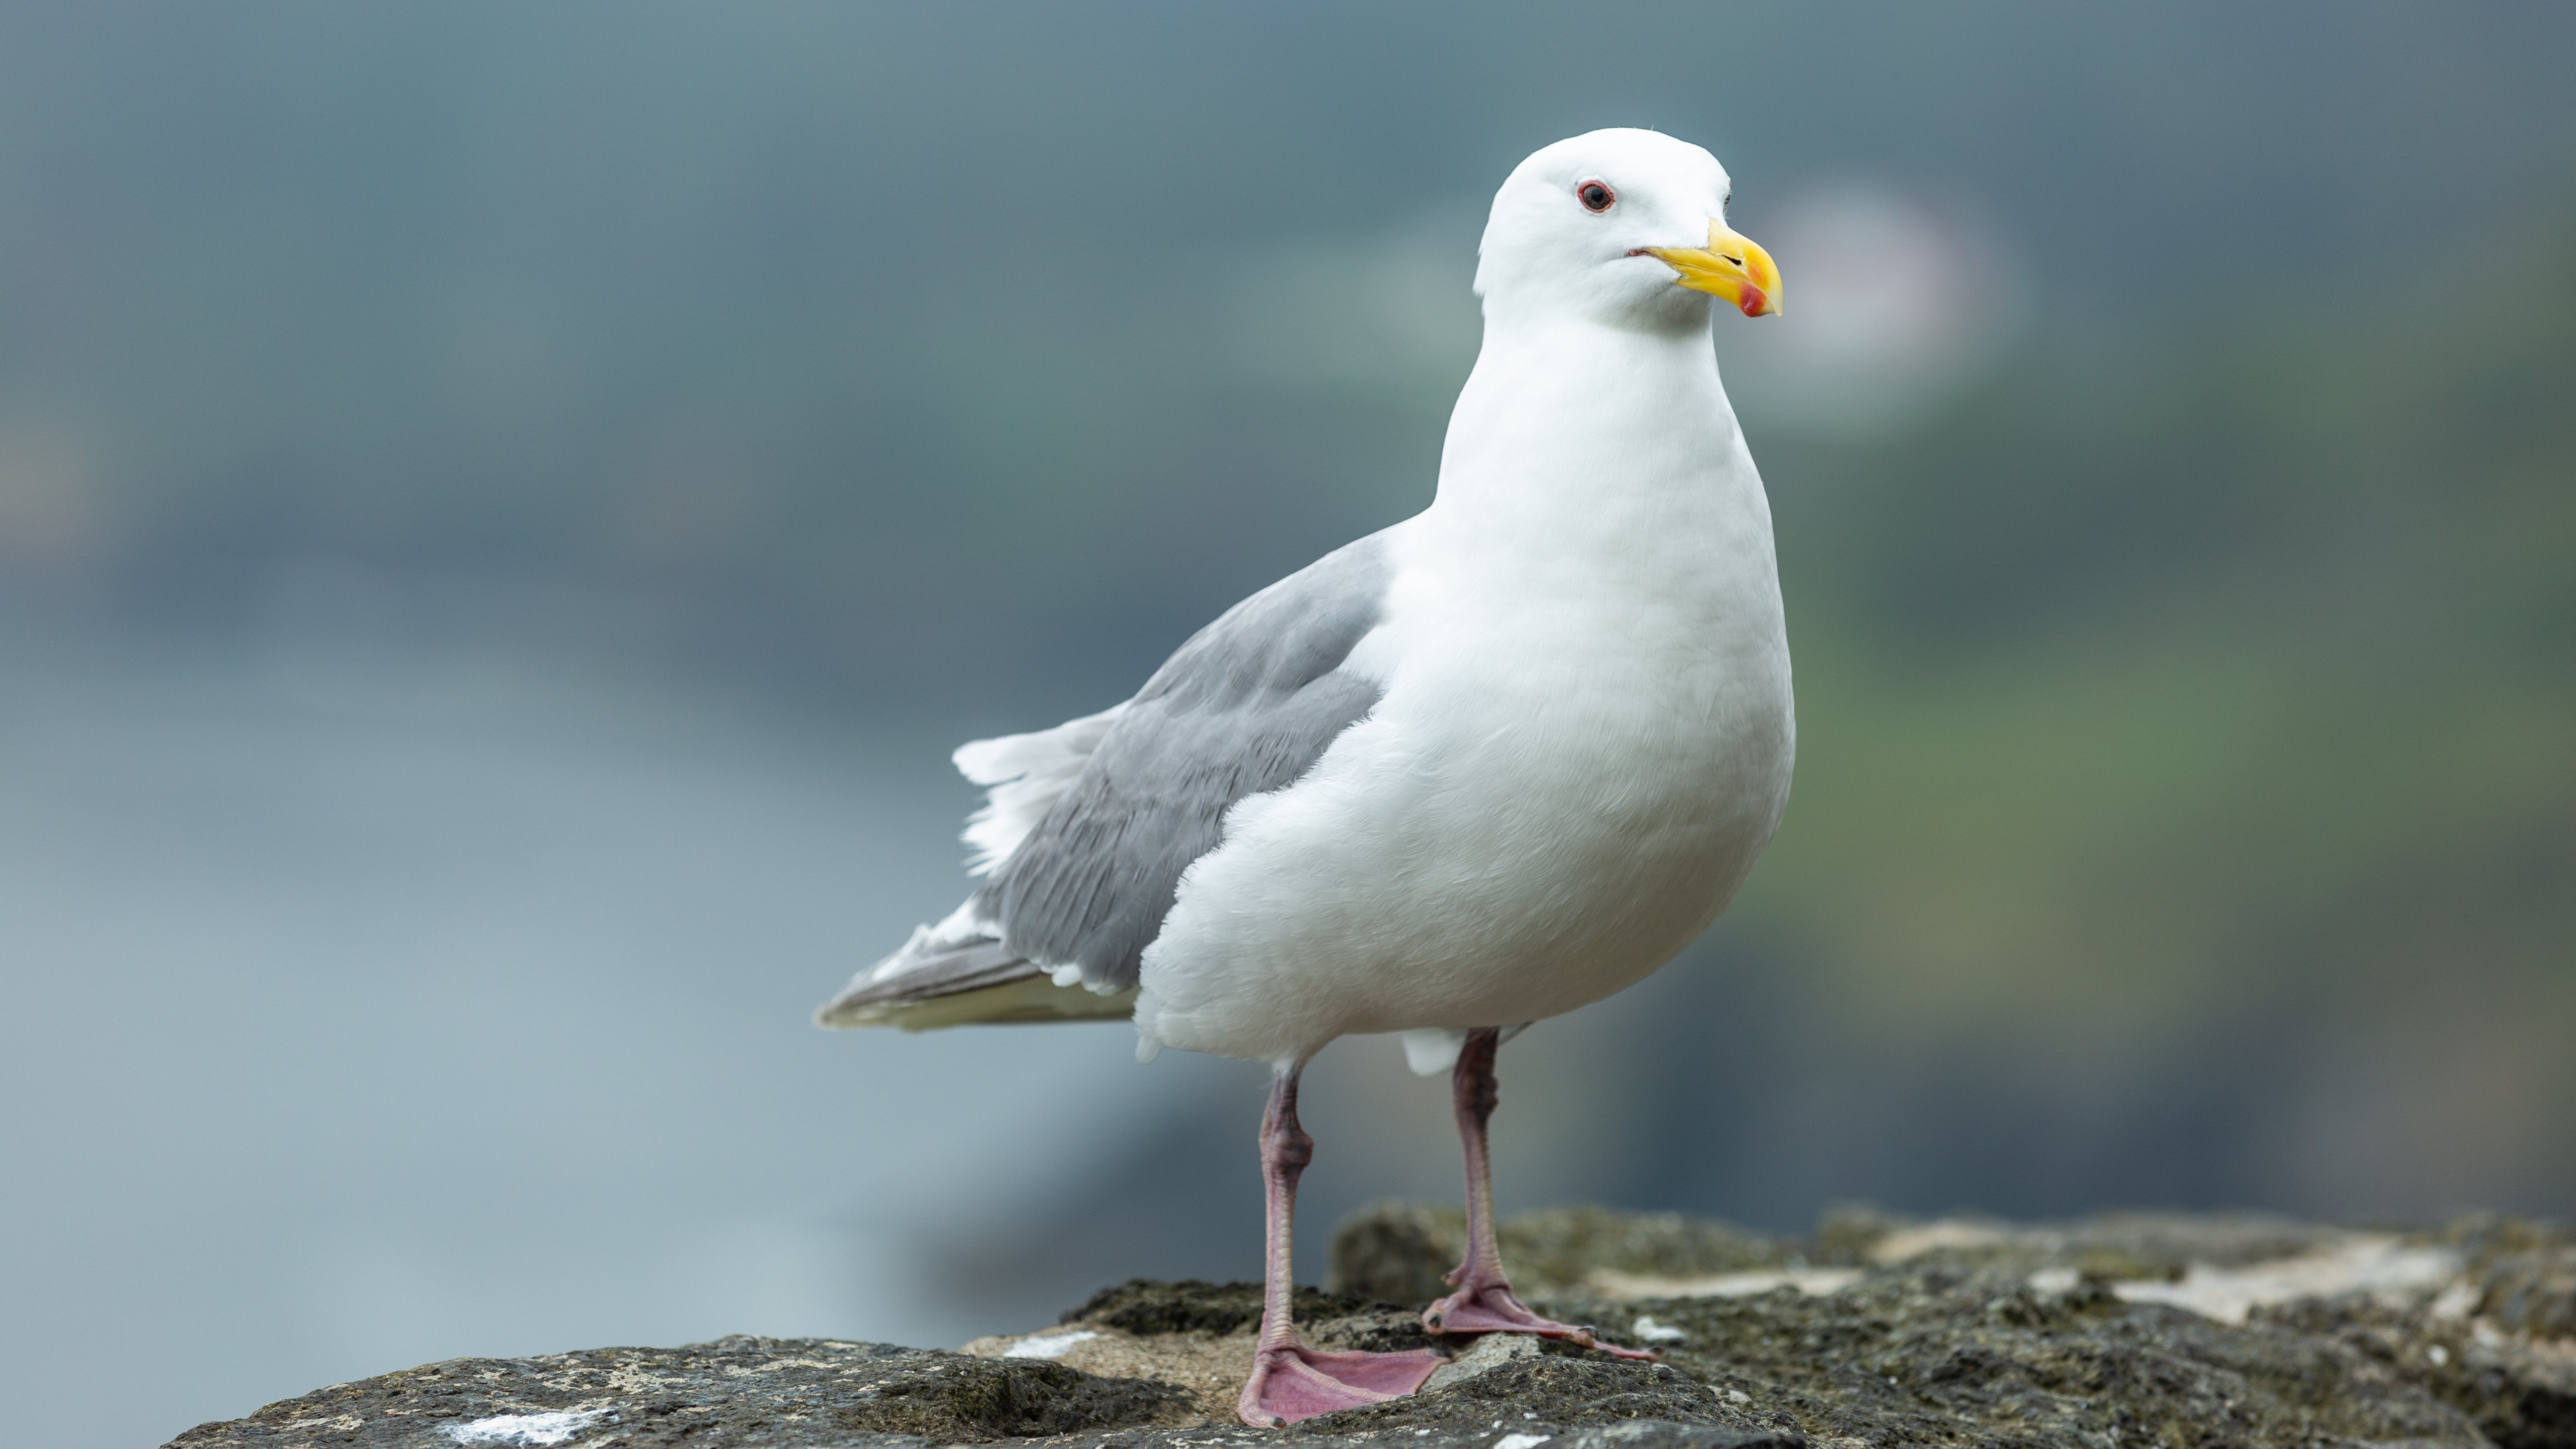 Close-Up Photo of Seagull on Rock